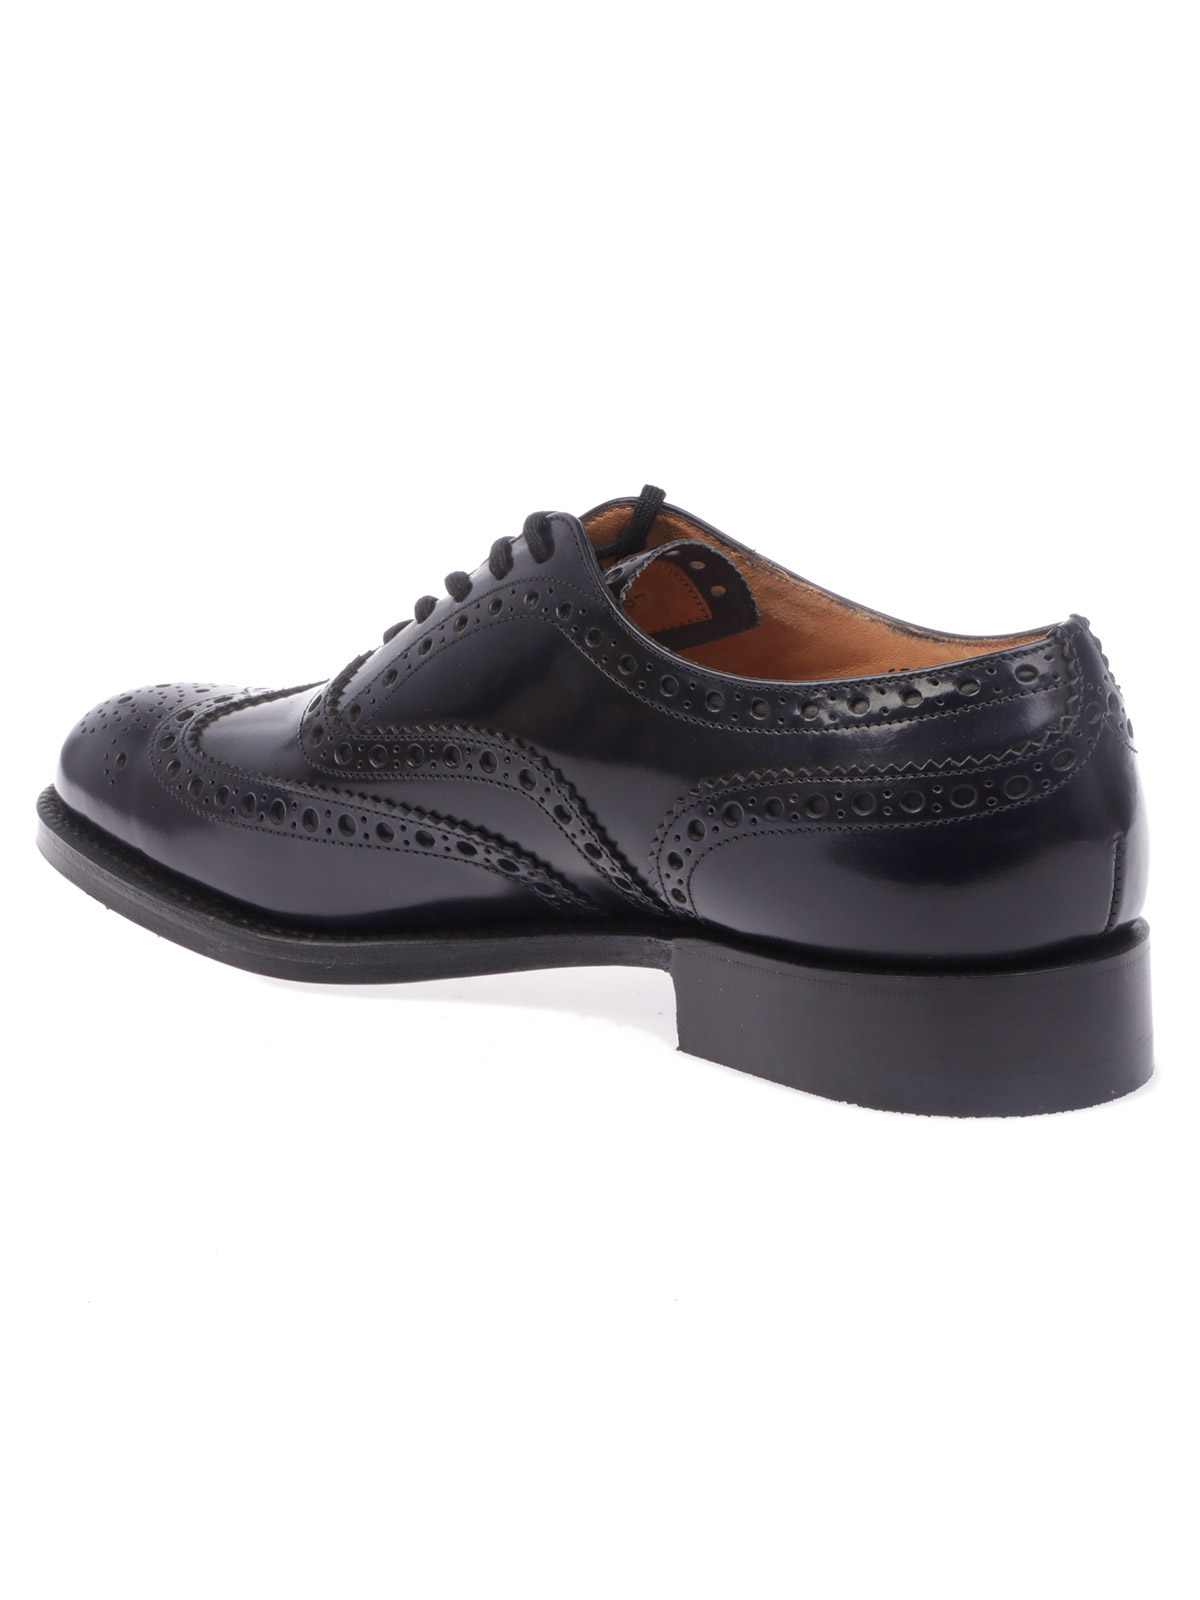 Picture of CHURCH'S | FOOTWEAR SCARPA